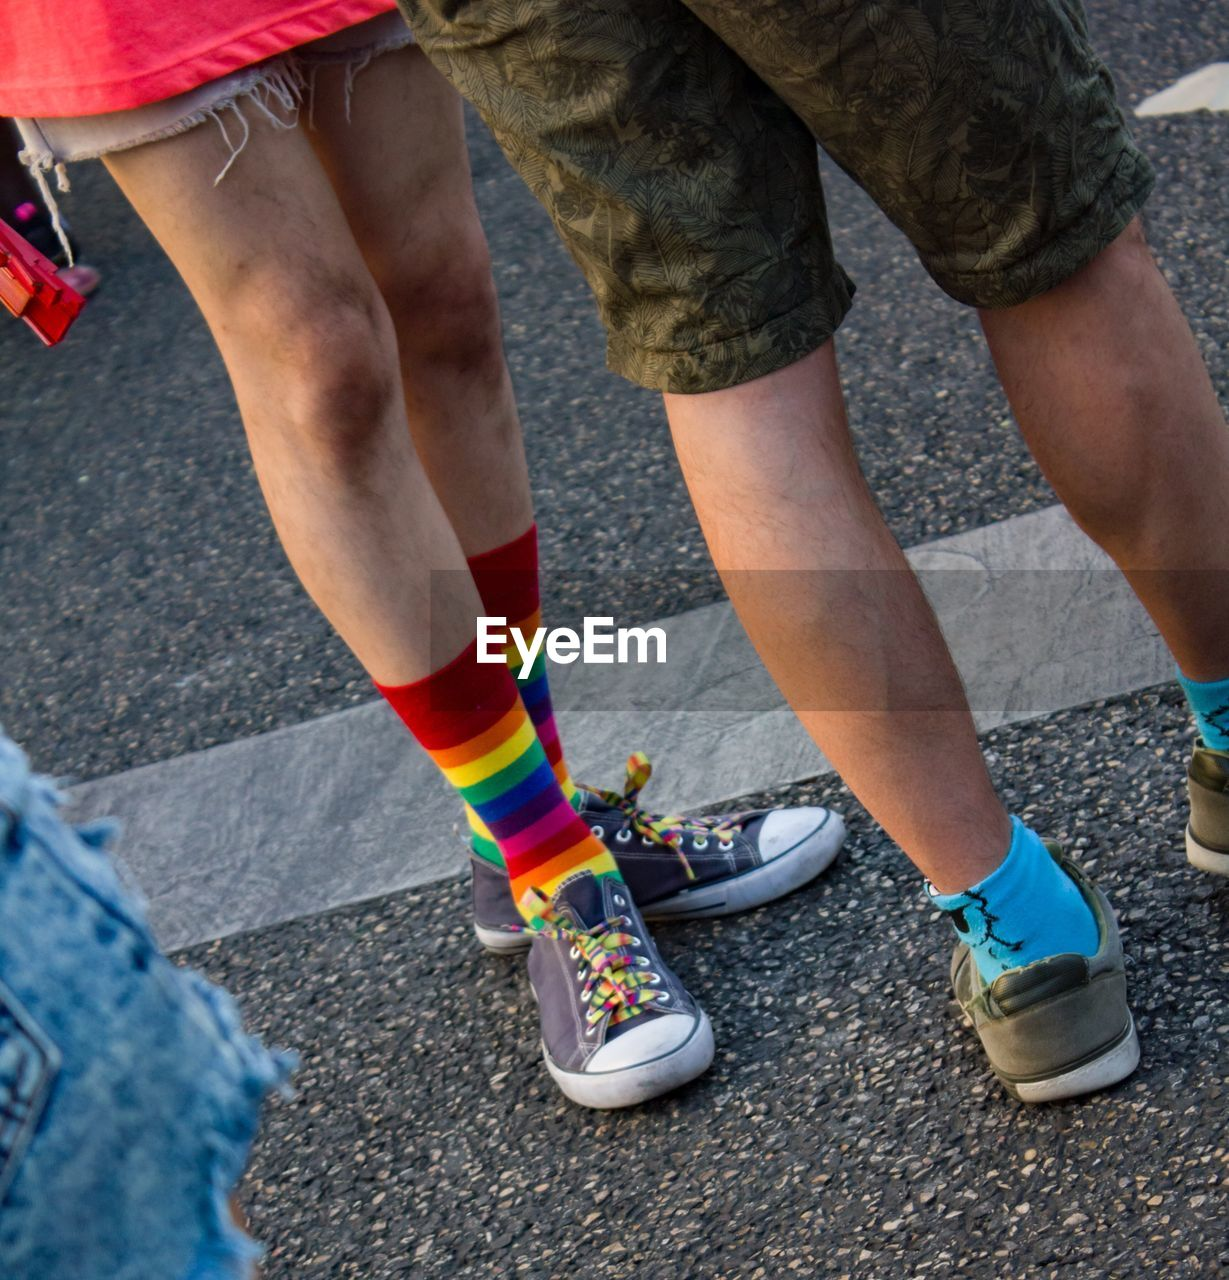 human leg, low section, body part, shoe, human body part, real people, city, day, sport, lifestyles, people, two people, street, road, men, togetherness, leisure activity, outdoors, standing, sports shoe, shorts, human limb, human foot